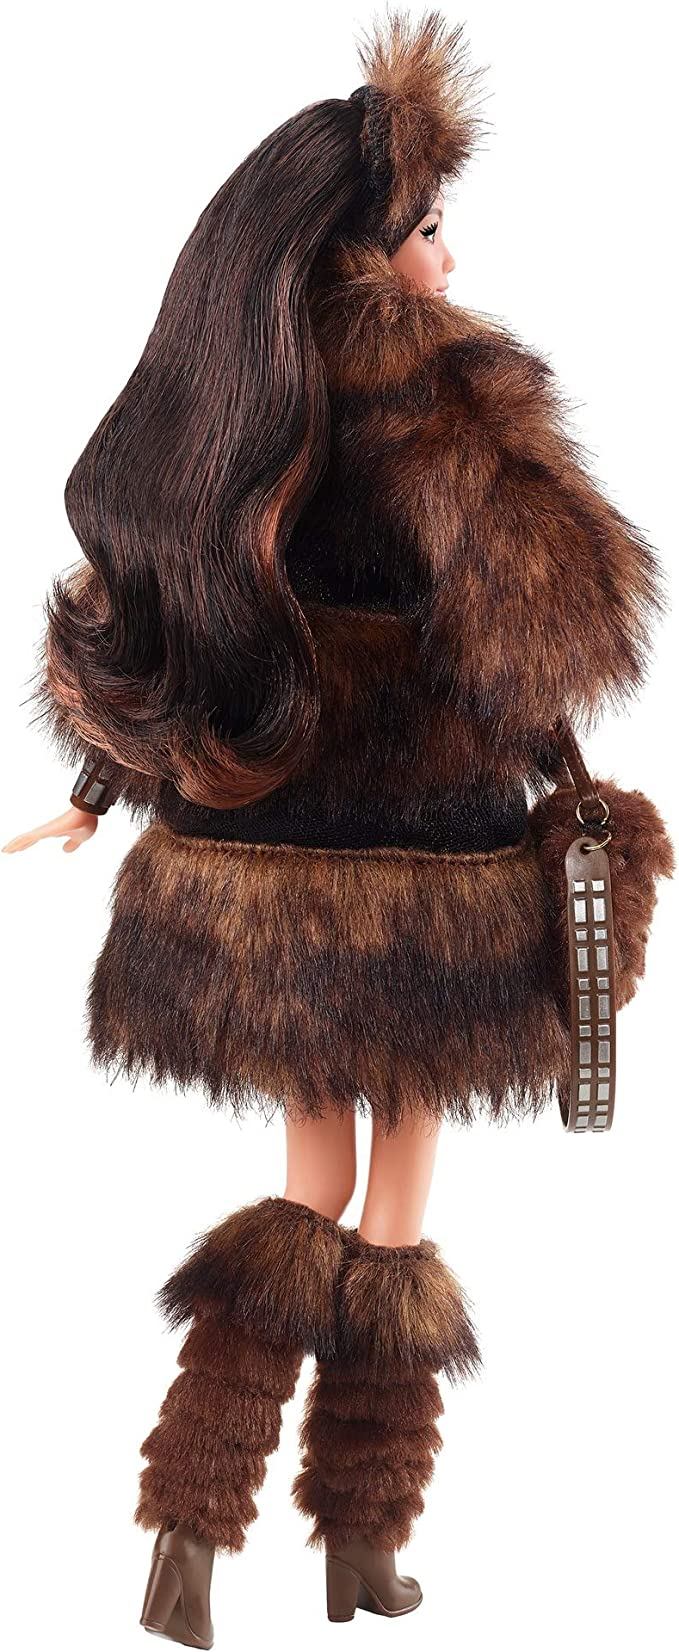 BARBIE STAR WARS CHEWBACCA DOLL IN SEALED SHIPPER  ****CHEAPEST ONE ON  ****